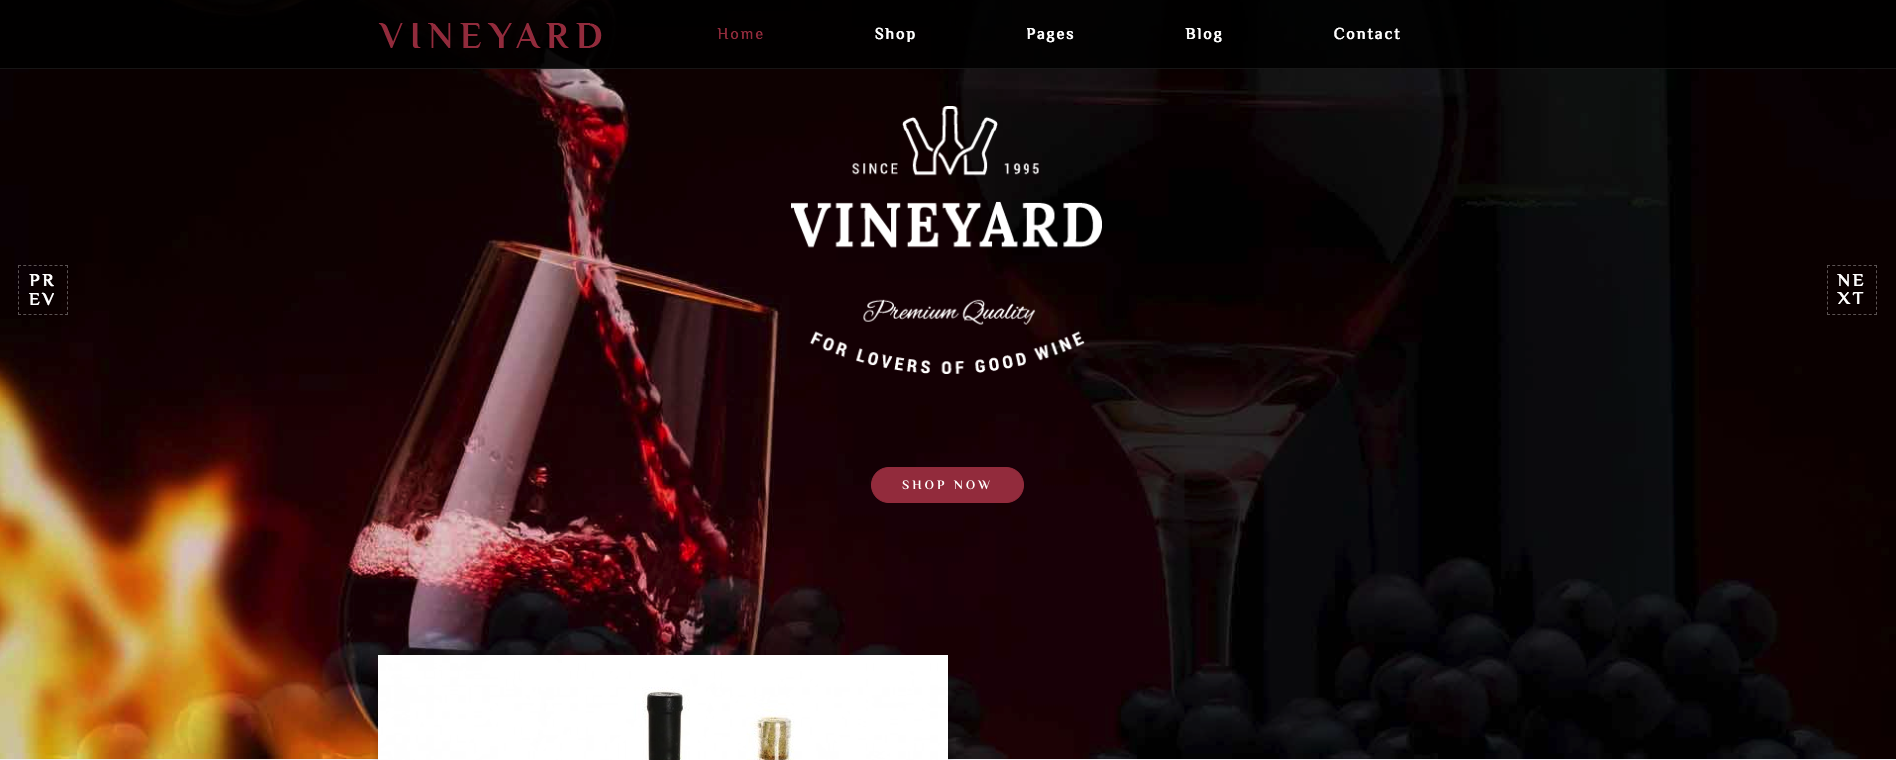 Vineyard WordPress Theme Review